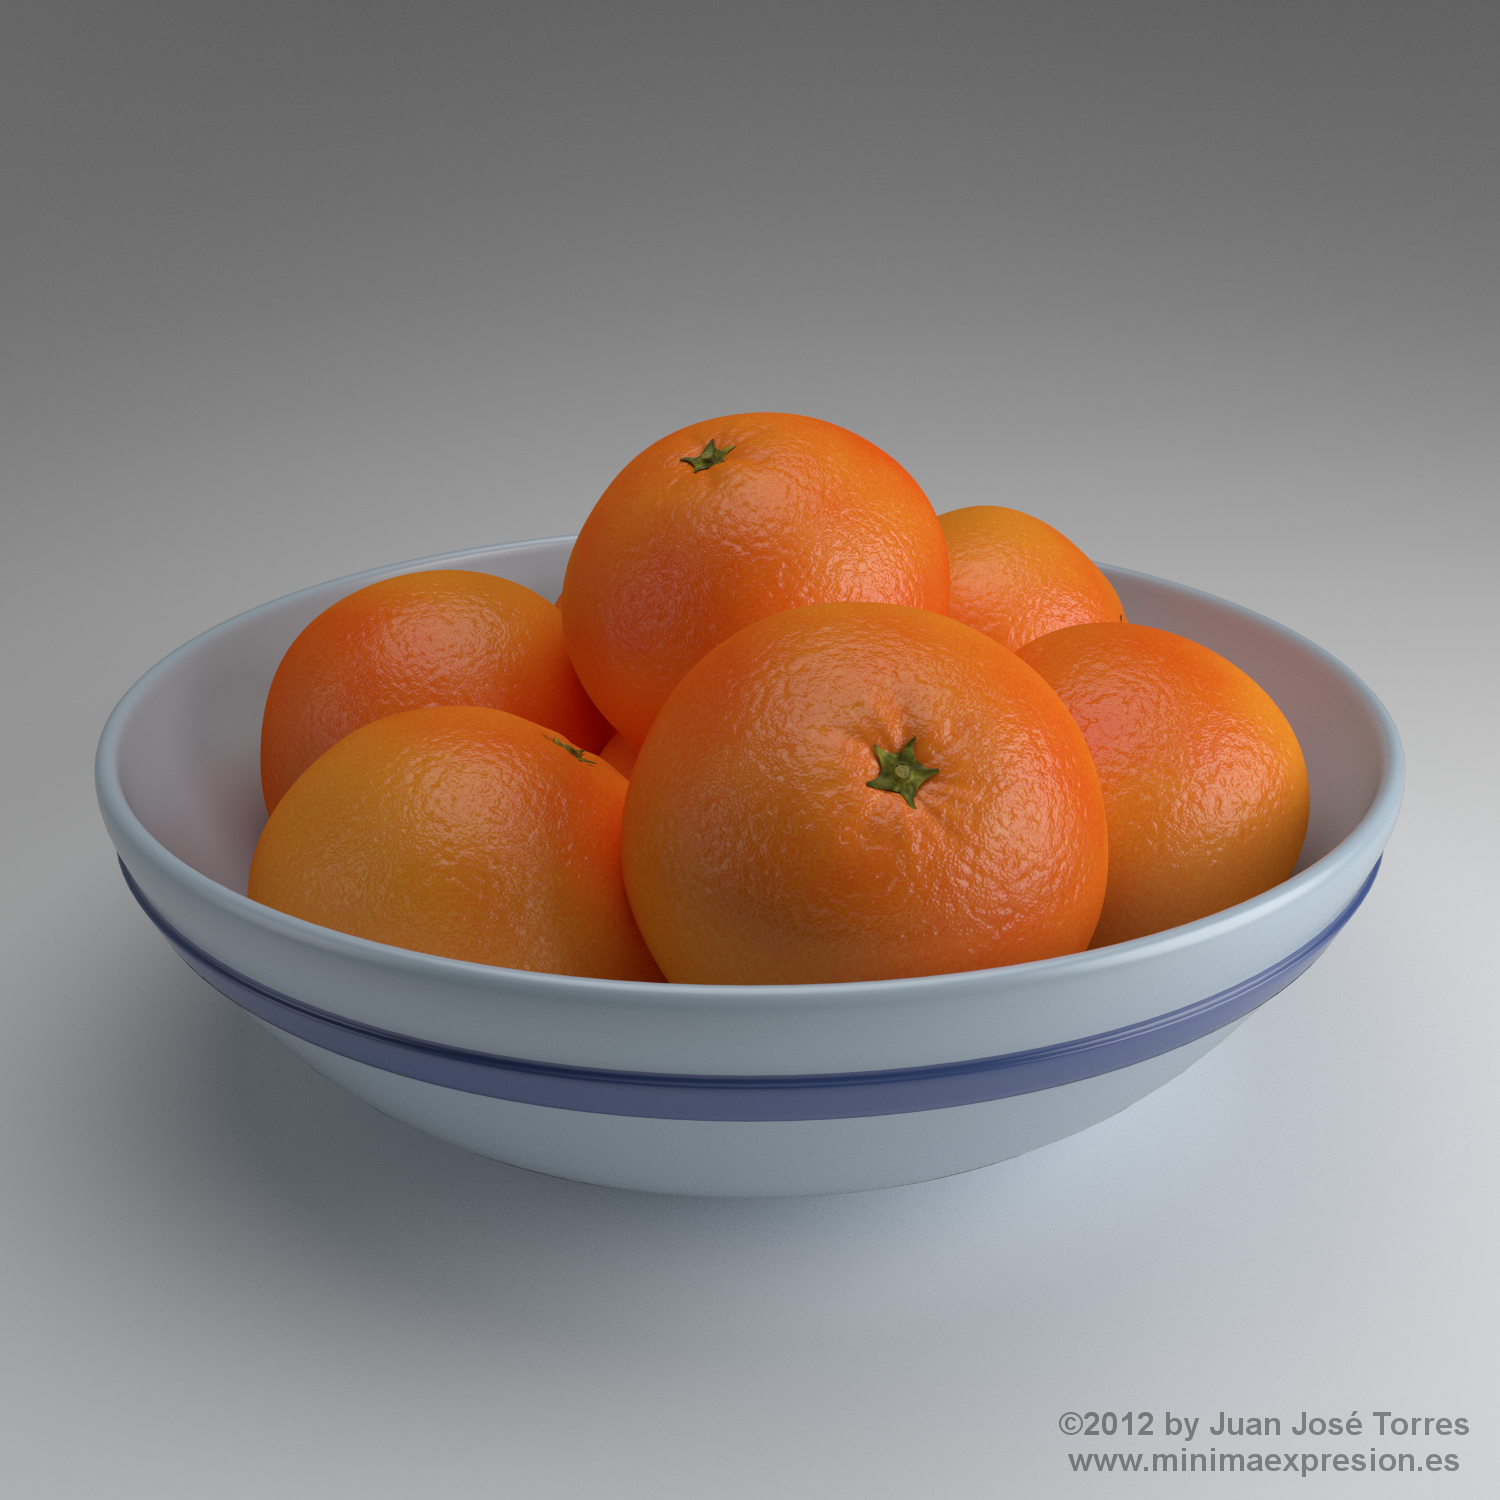 Oranges in a fruit bowl - A procedural materials study